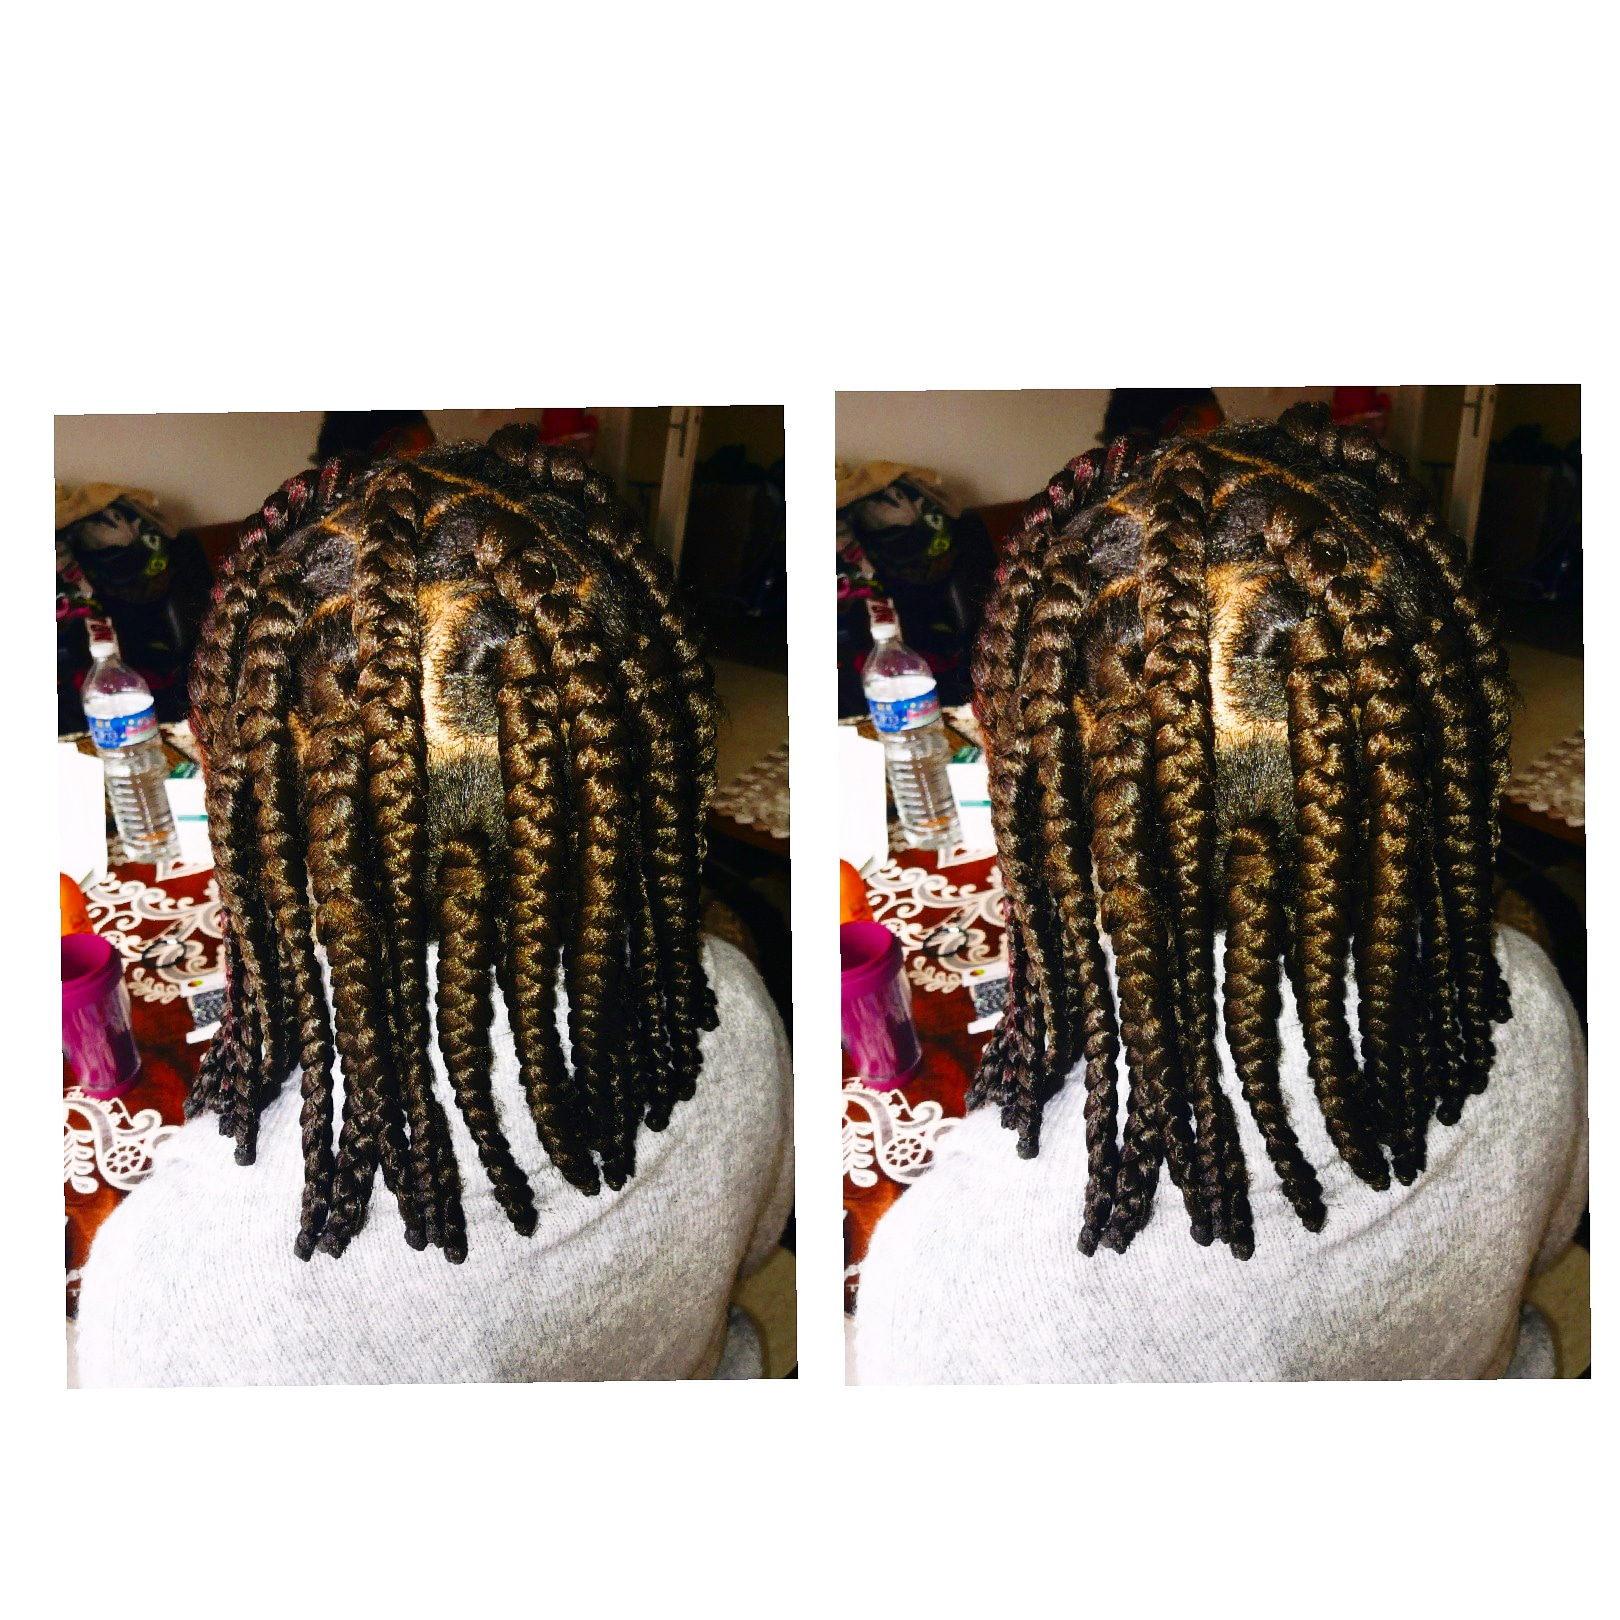 salon de coiffure afro tresse tresses box braids crochet braids vanilles tissages paris 75 77 78 91 92 93 94 95 GOEDCFCM